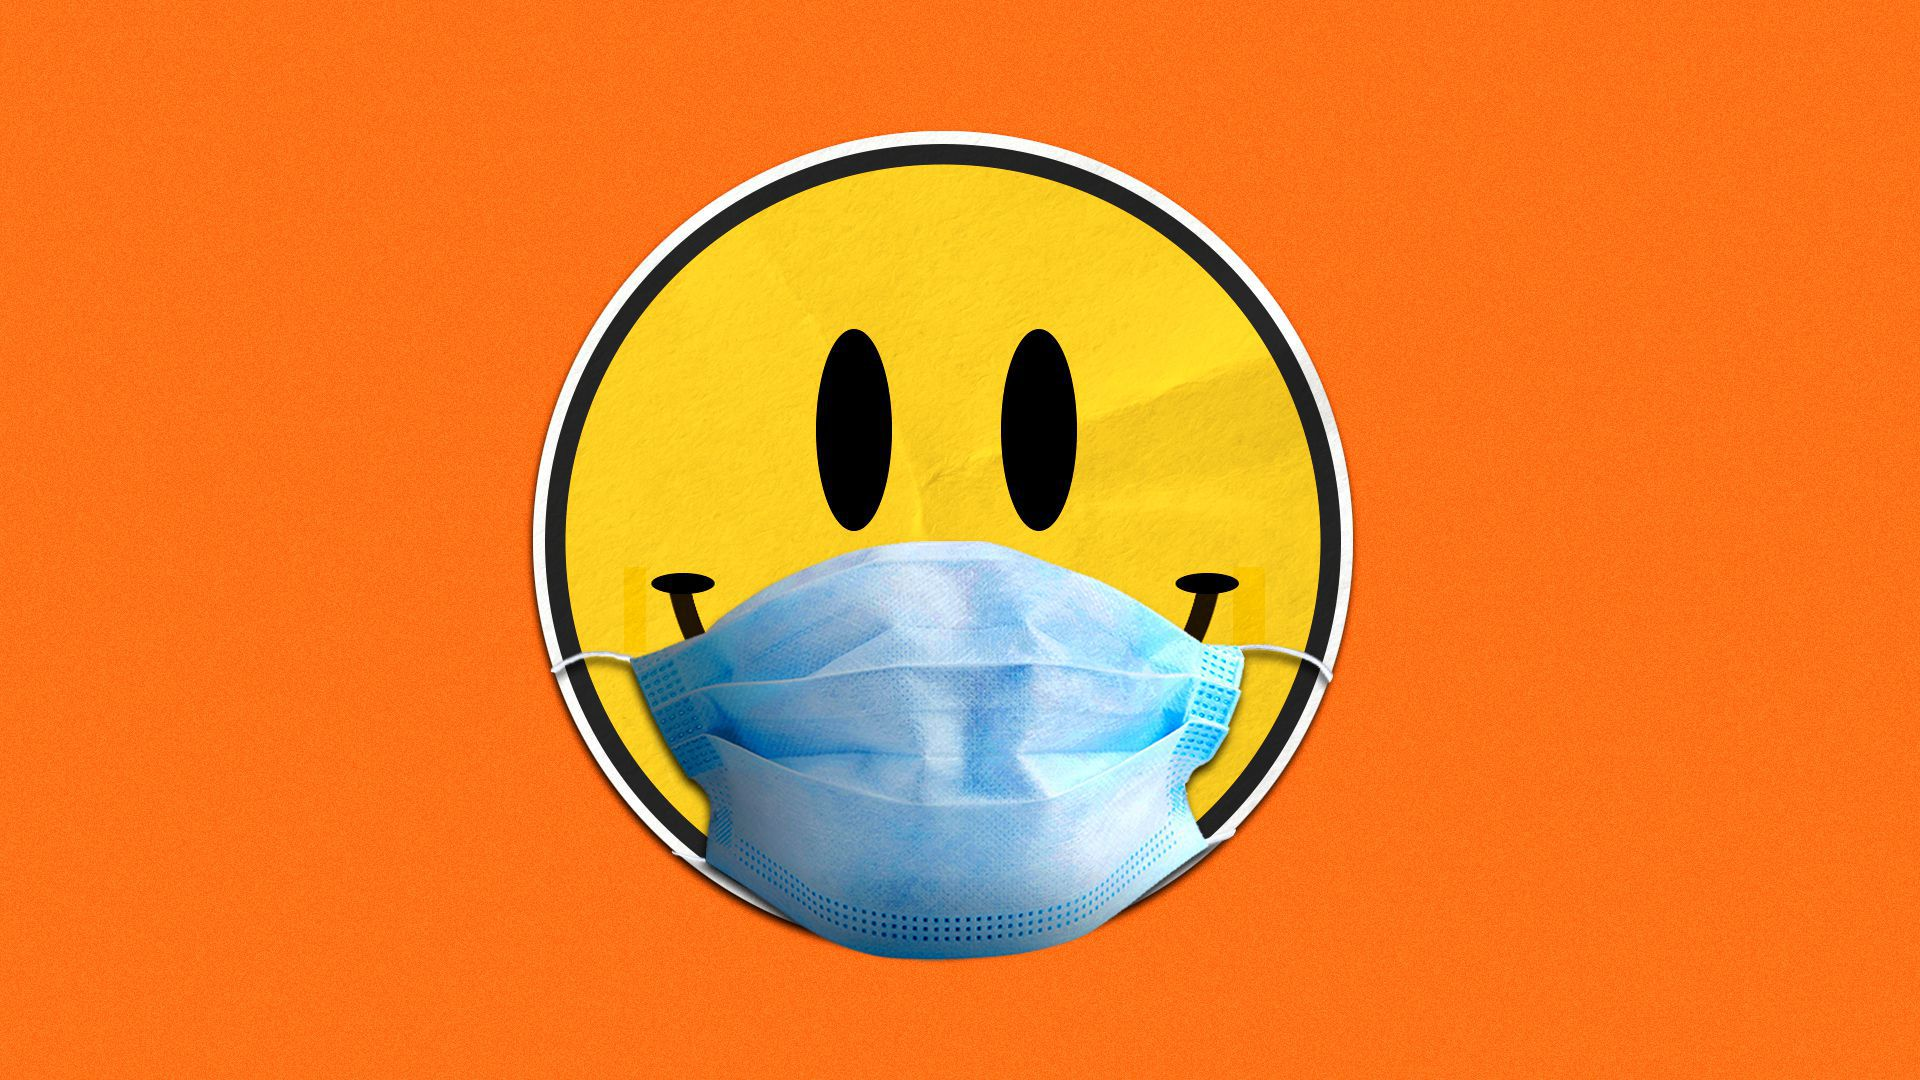 Illustration of a smiley face sticker wearing a face mask